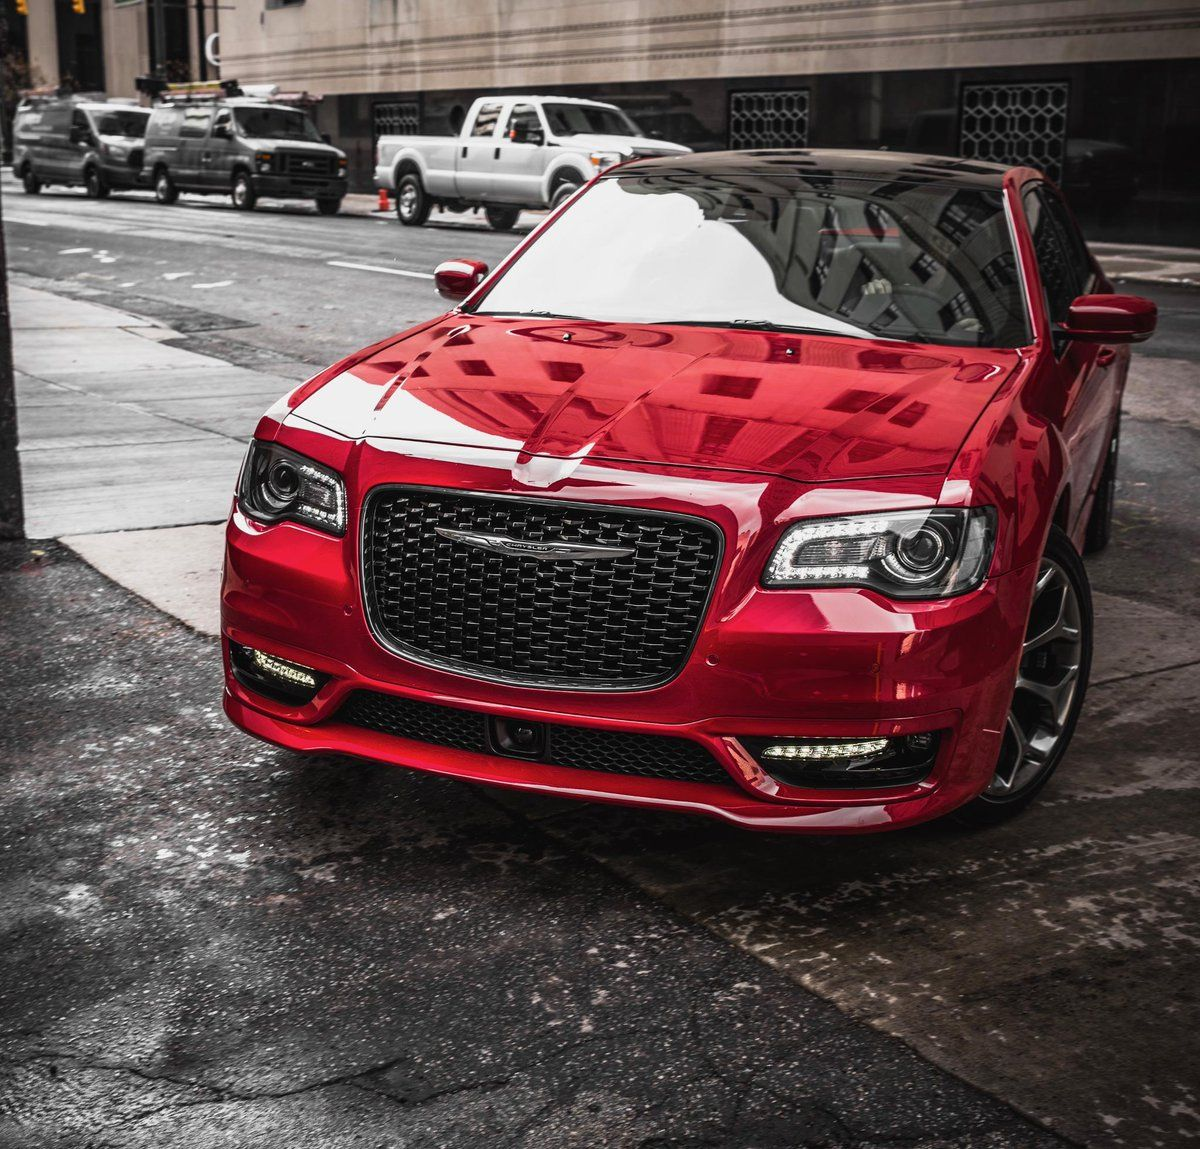 Take Charge In The Chrysler 300 Chrysler Prioritized Comfort And